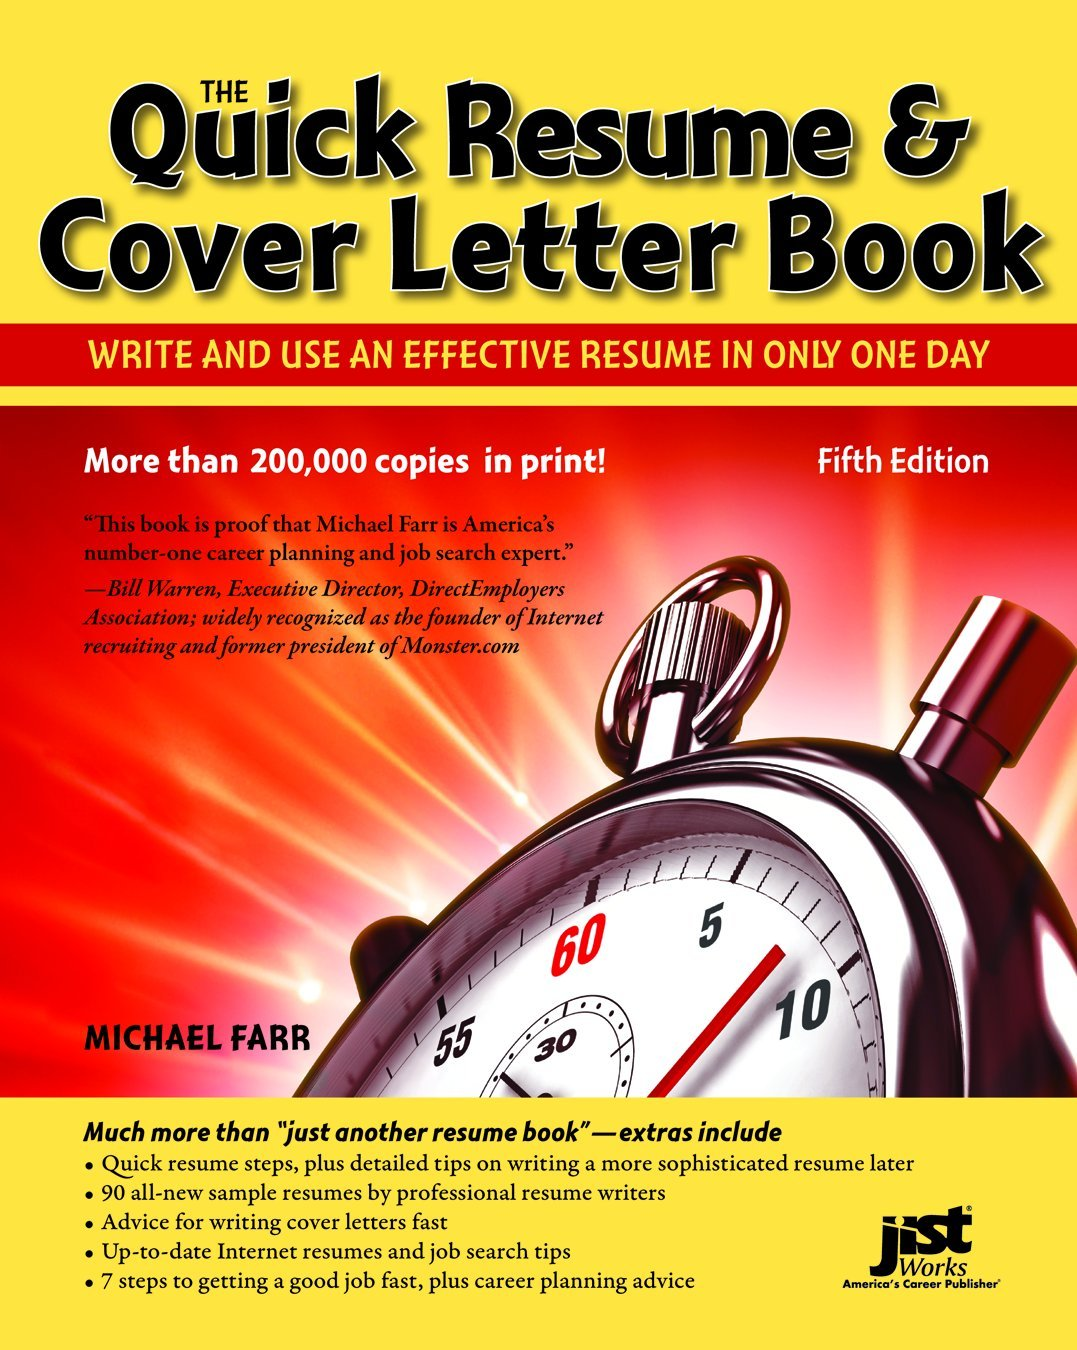 quick resume cover letter book write and use an effective resume in just one day quick resume and cover letter book michael farr jist editors - Quick Resume